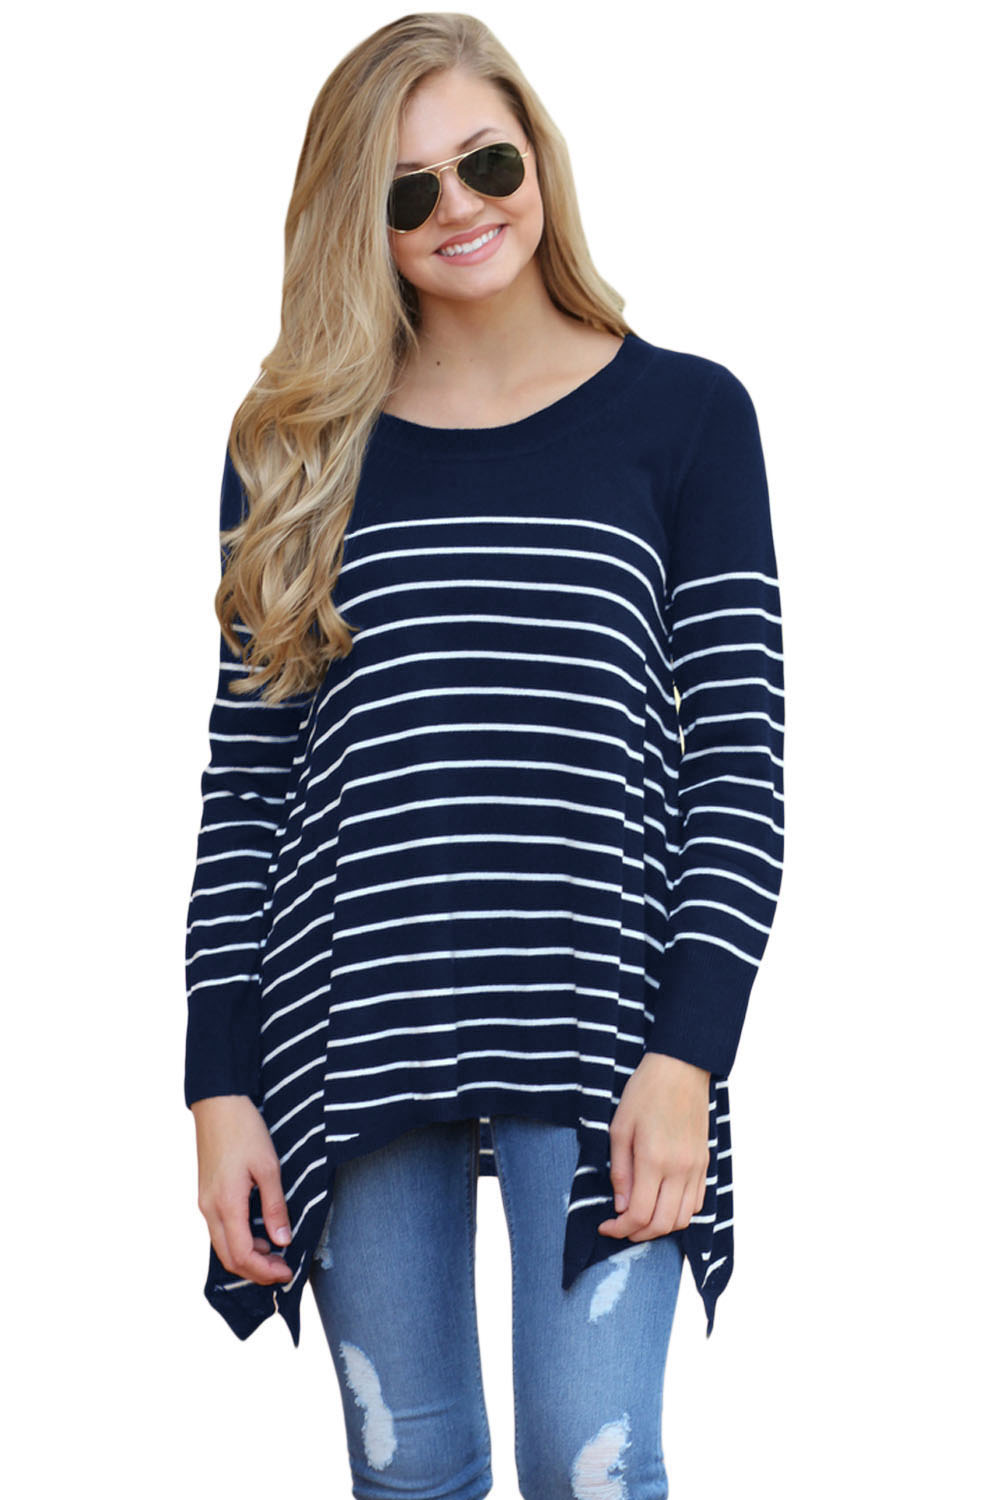 Navy Pullover Striped Knit Sweater Top Knitted pullover